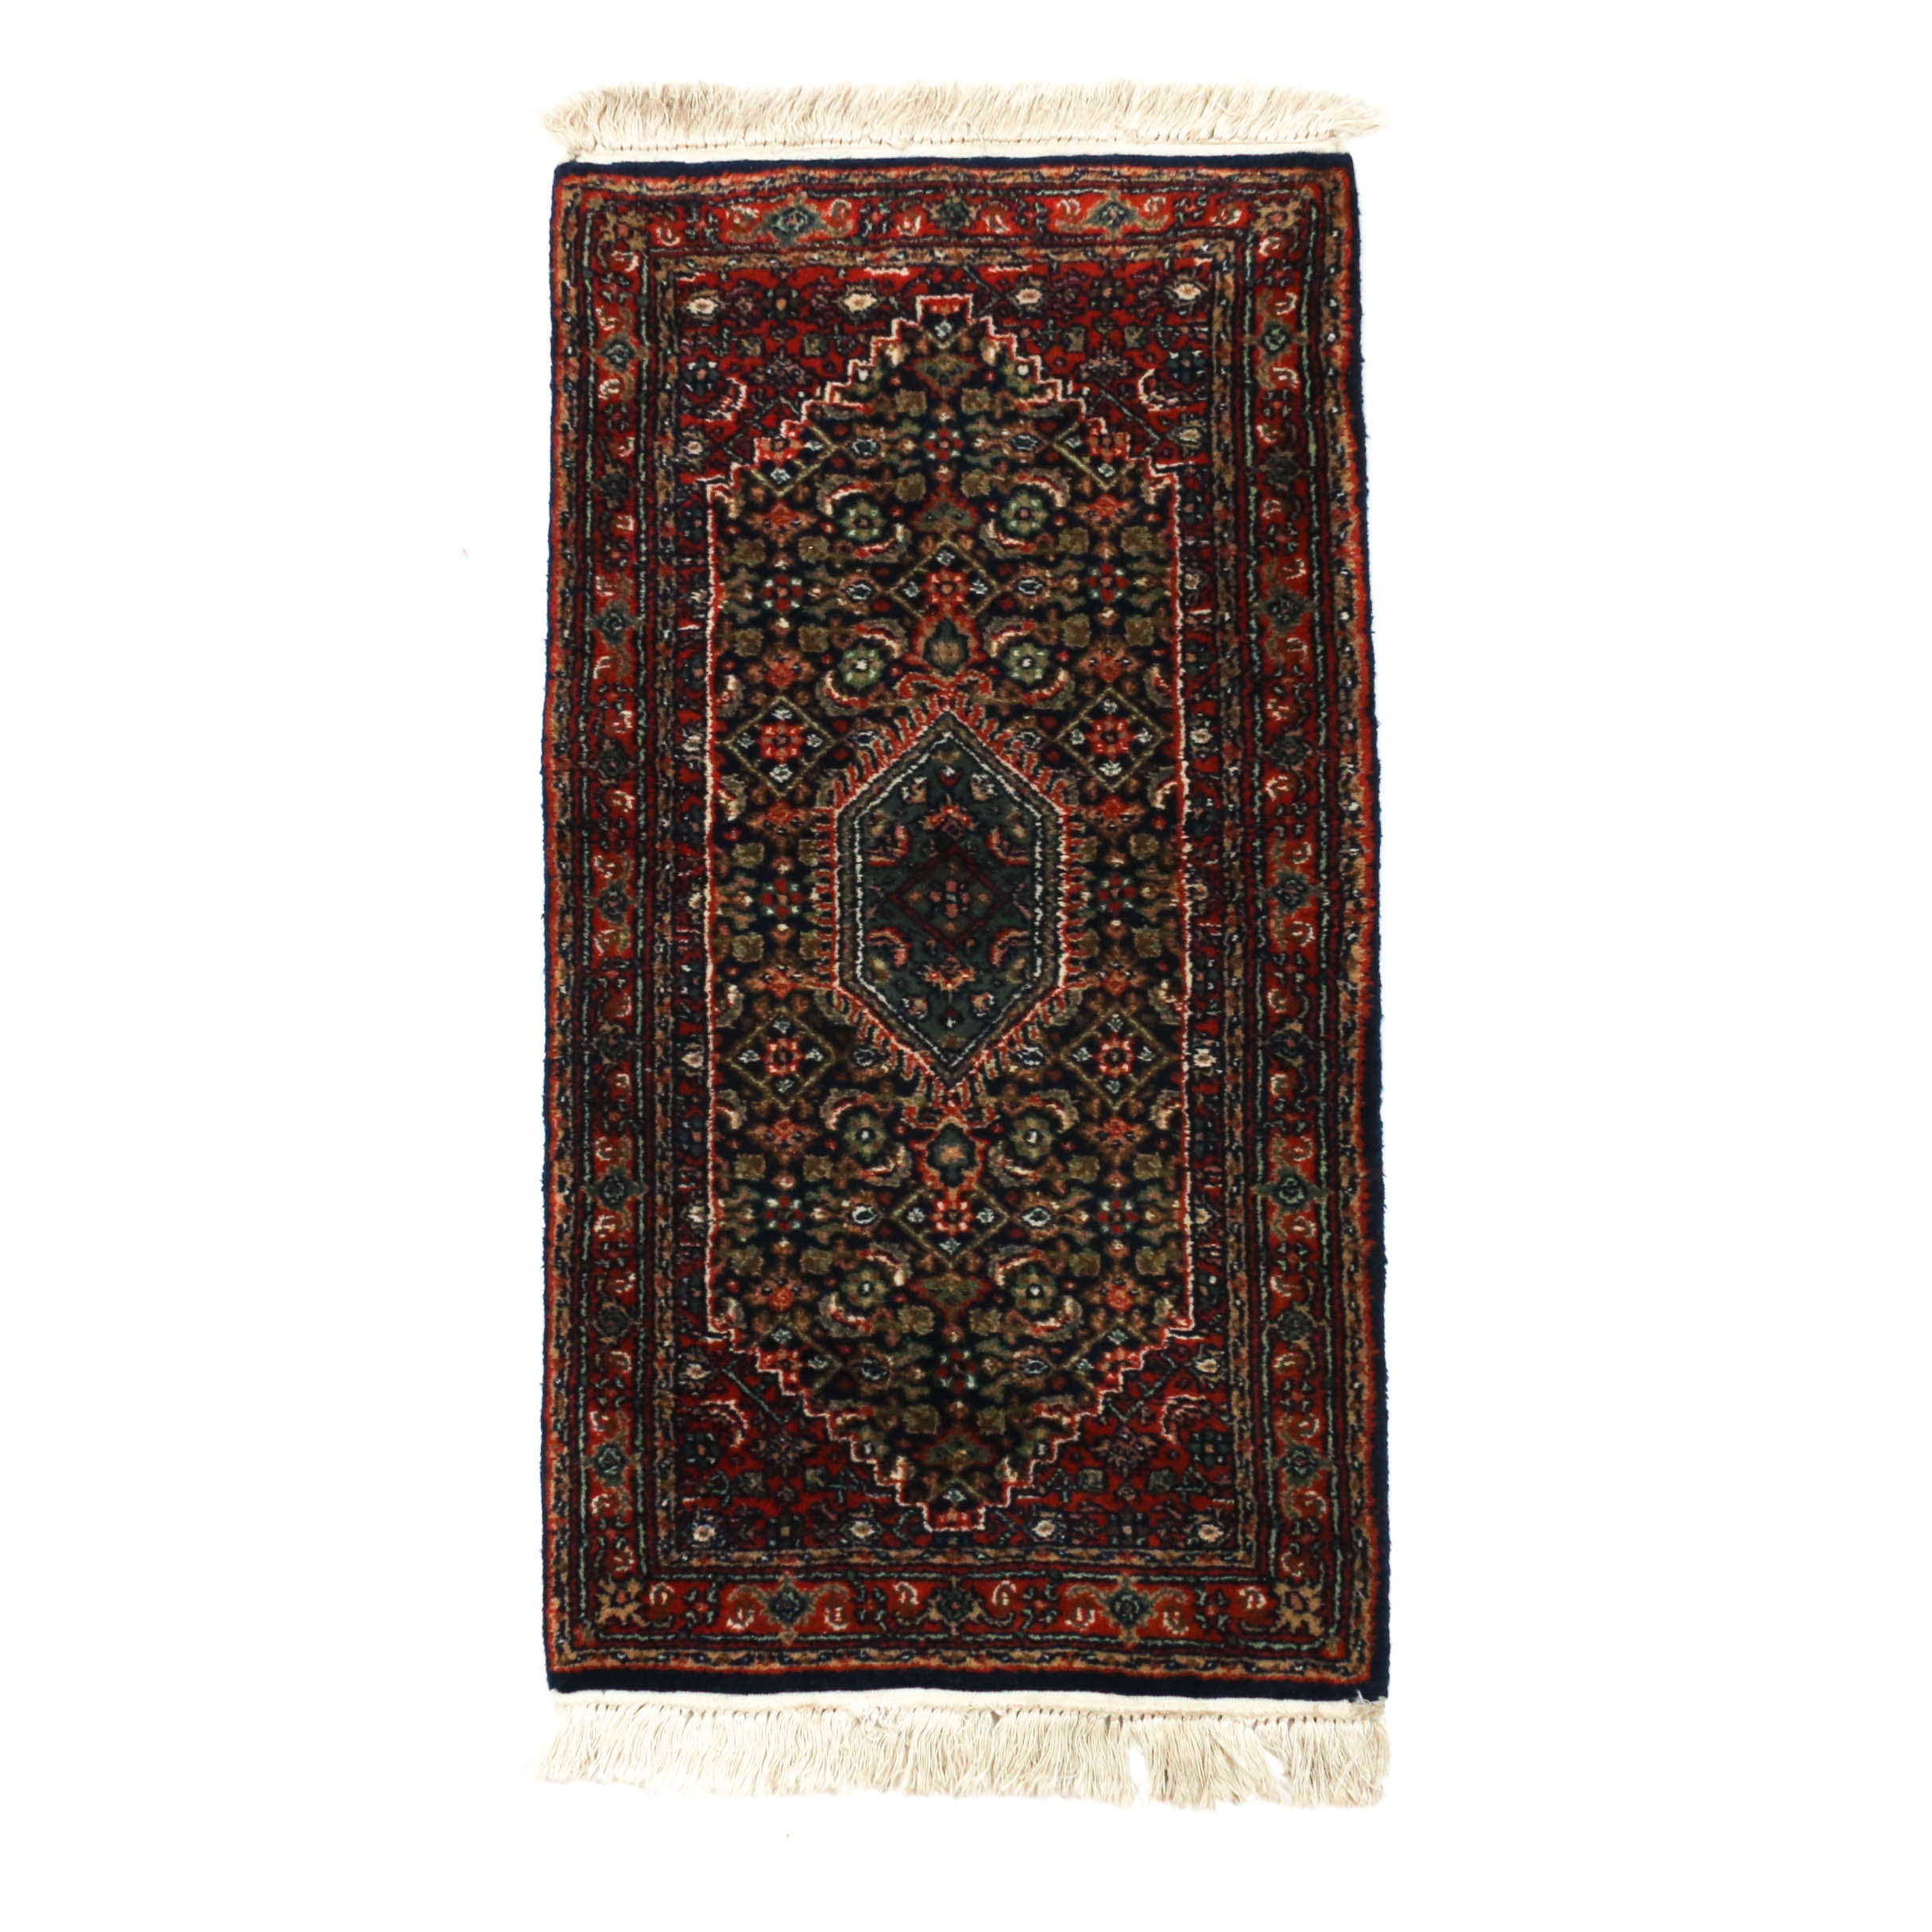 2'0 x 4'4 Hand-Knotted Indo-Persian Bijar Wool Rug